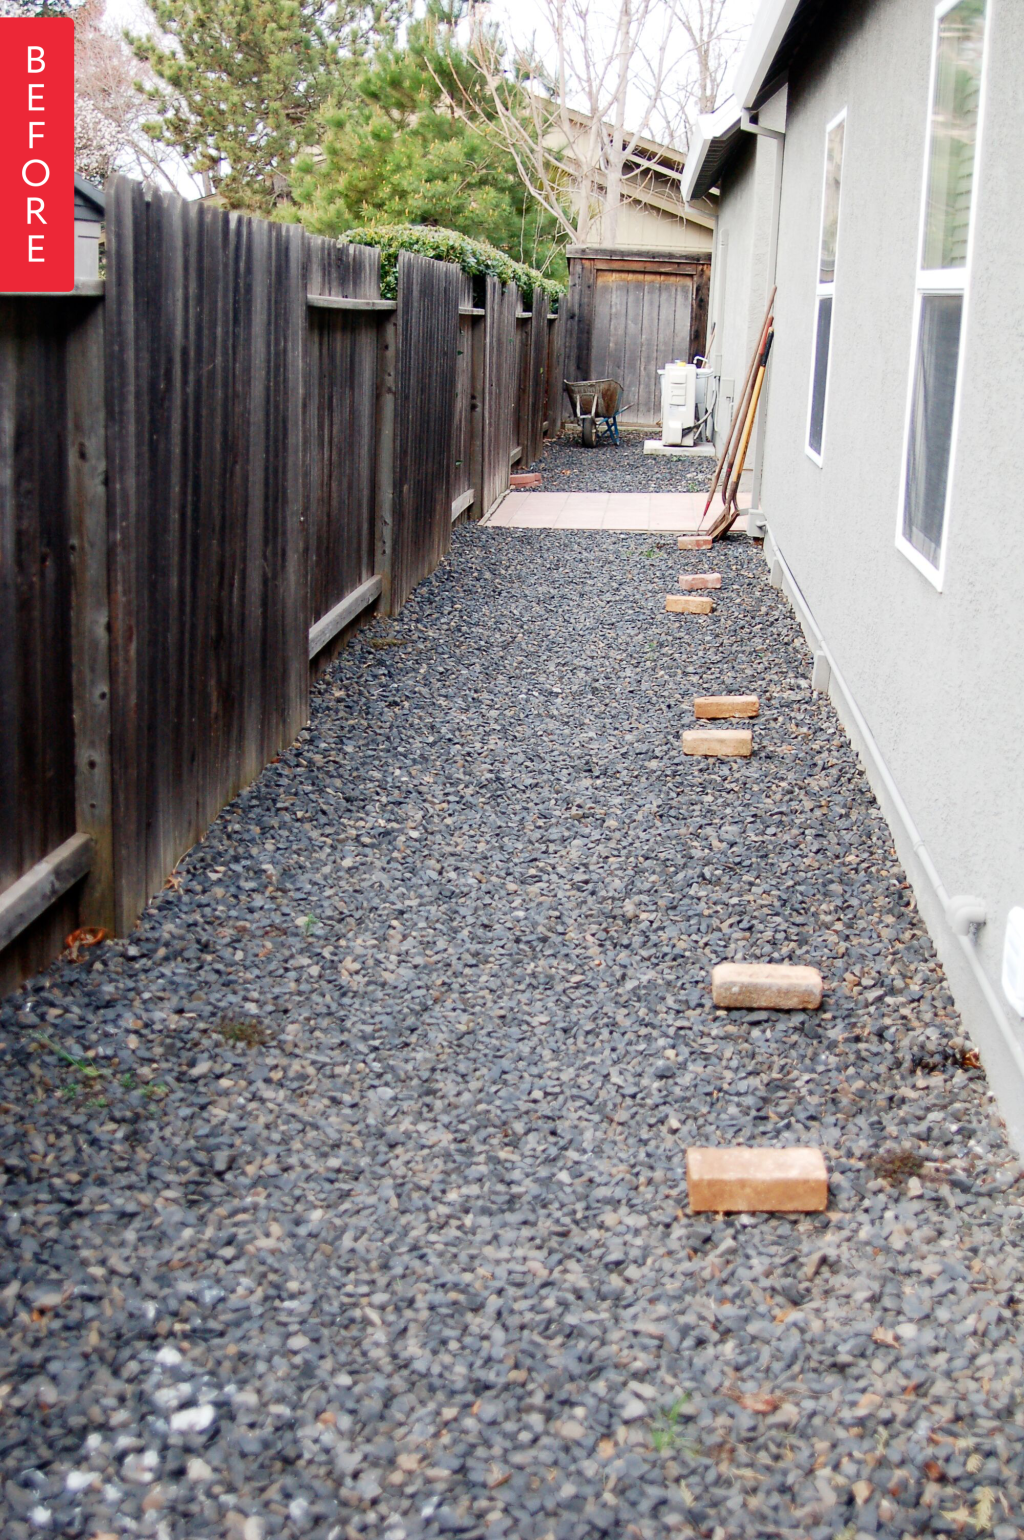 Before & After: A Side Yard Goes from Barren to Bountiful If you live in a typical suburban house, chances are good you have a side yard — a barren little strip of land between the side of the house and the fence covered in grass or rocks and probably not much else & After: A Side Yard Goes from Barren to Bountiful If you live in a typical suburban house, chances are good you have a side yard — a barren little strip of land between the side of the house and the fence covered in grass or rocks and probably not much elseIf you live in a typical suburban house, chances are good you have a side yard — a barren little stri...